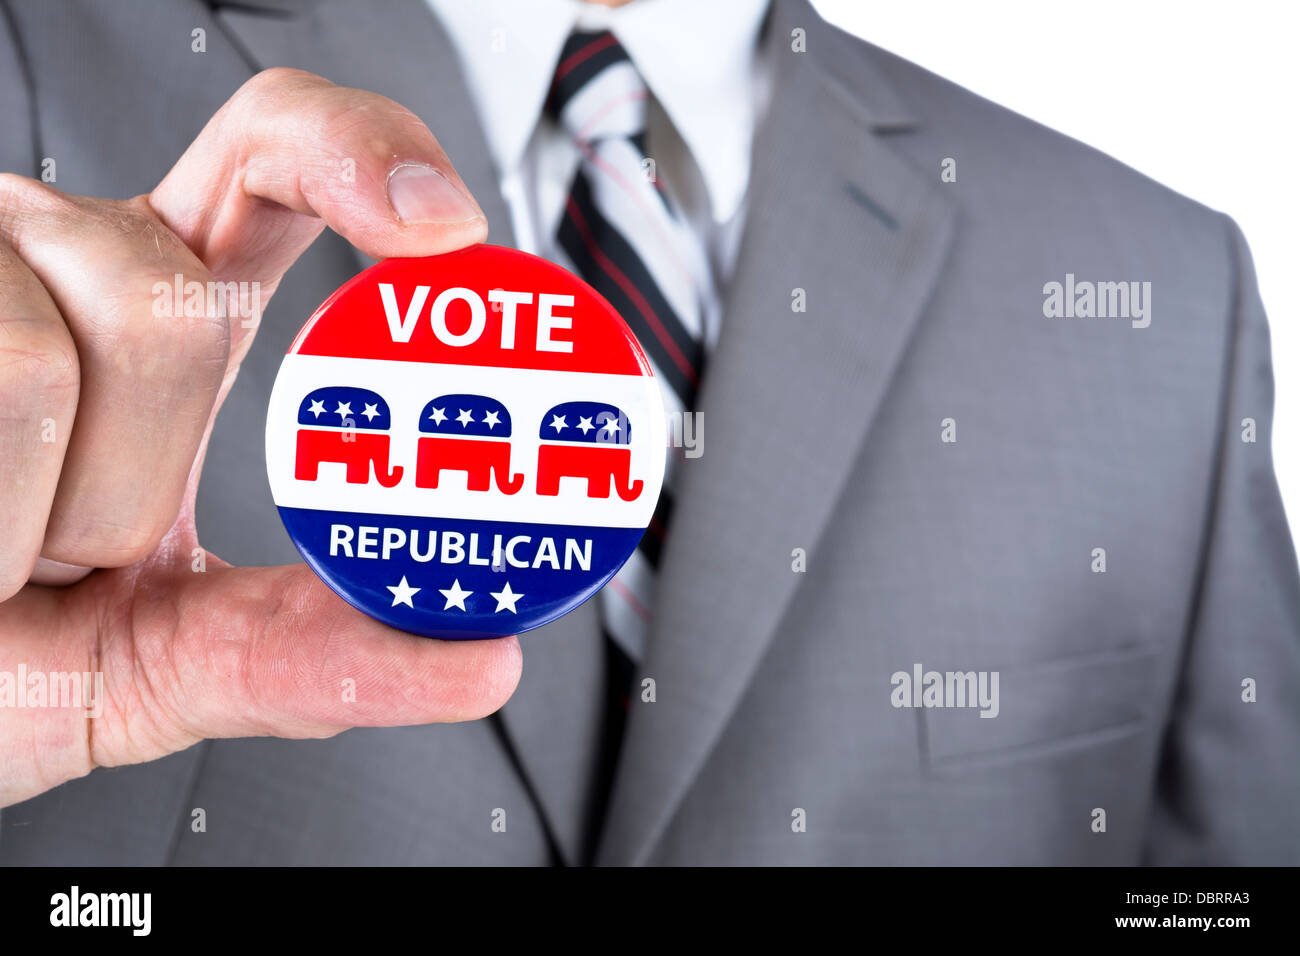 A campaigning politician showing his republican political badge during election season in the USA - Stock Image